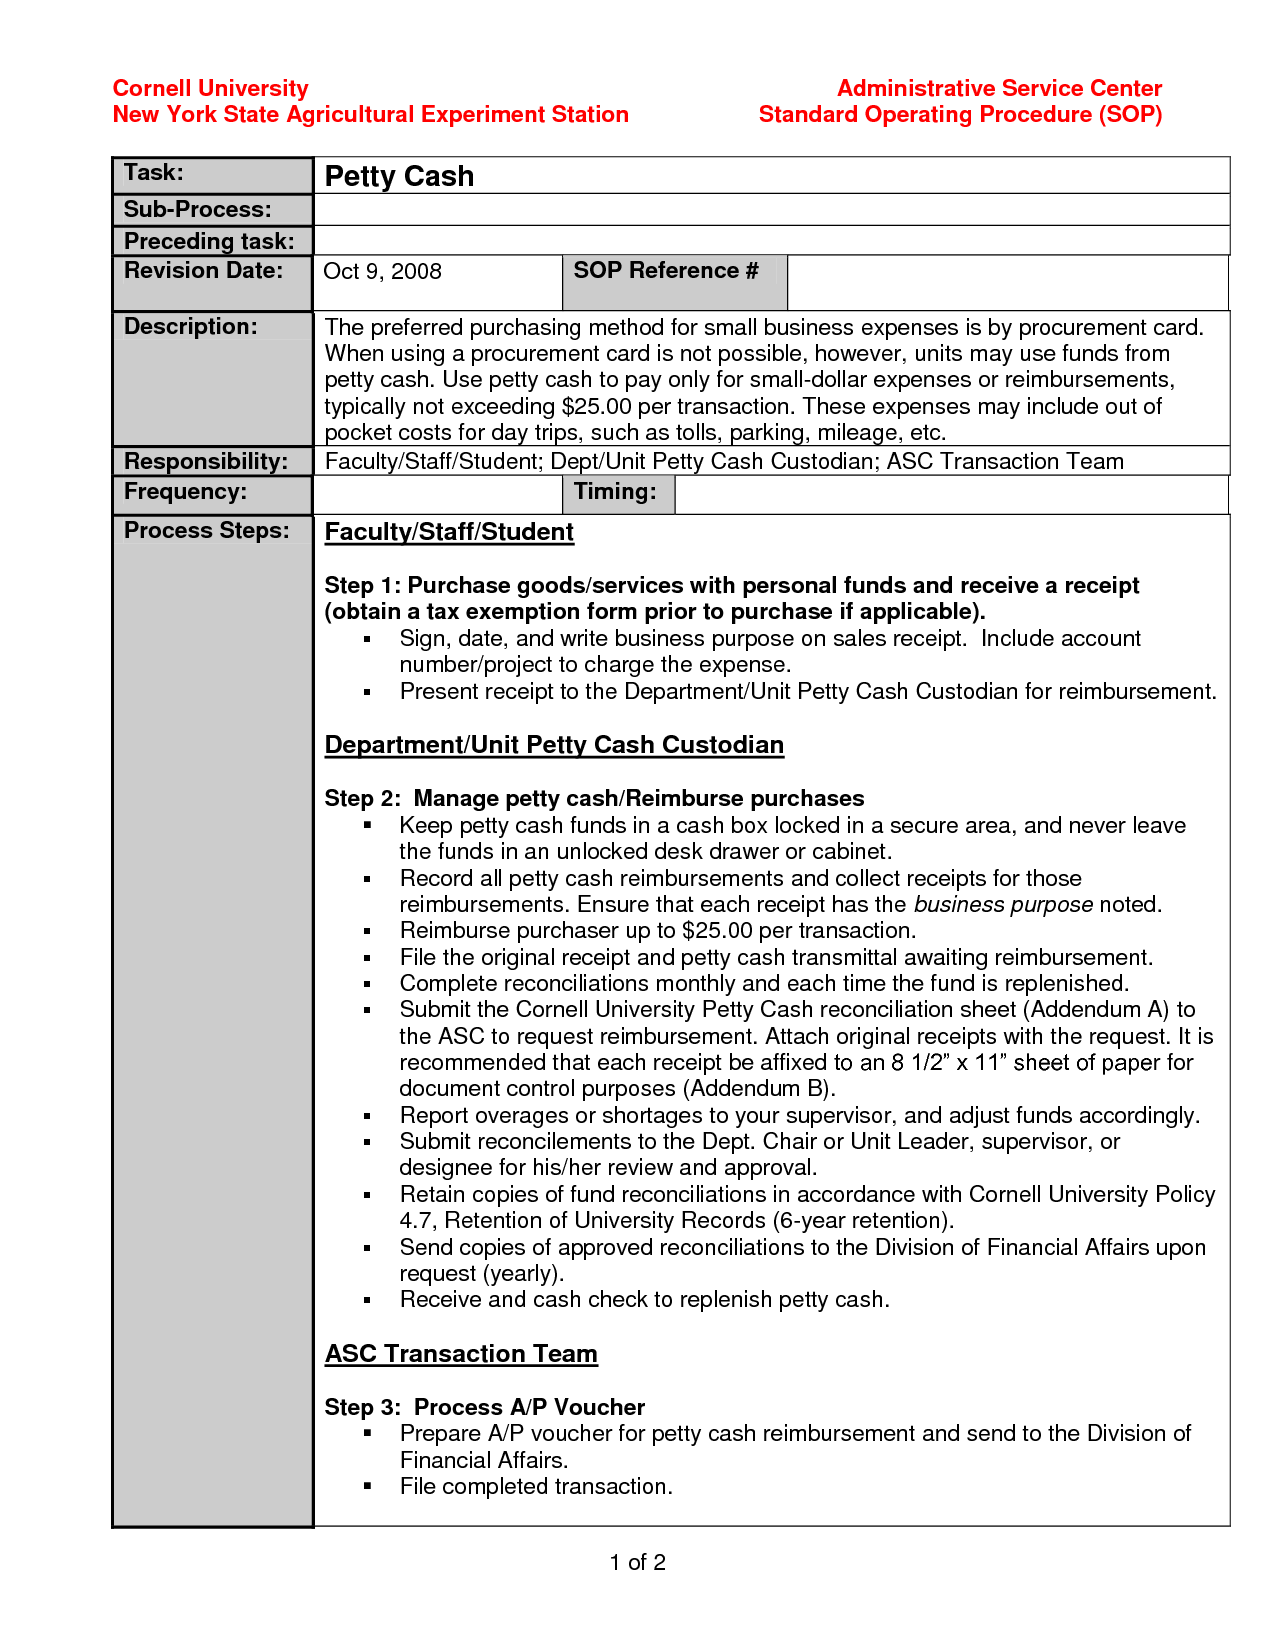 Standard operating procedure template example evq8bwf6 for Information technology procedure template